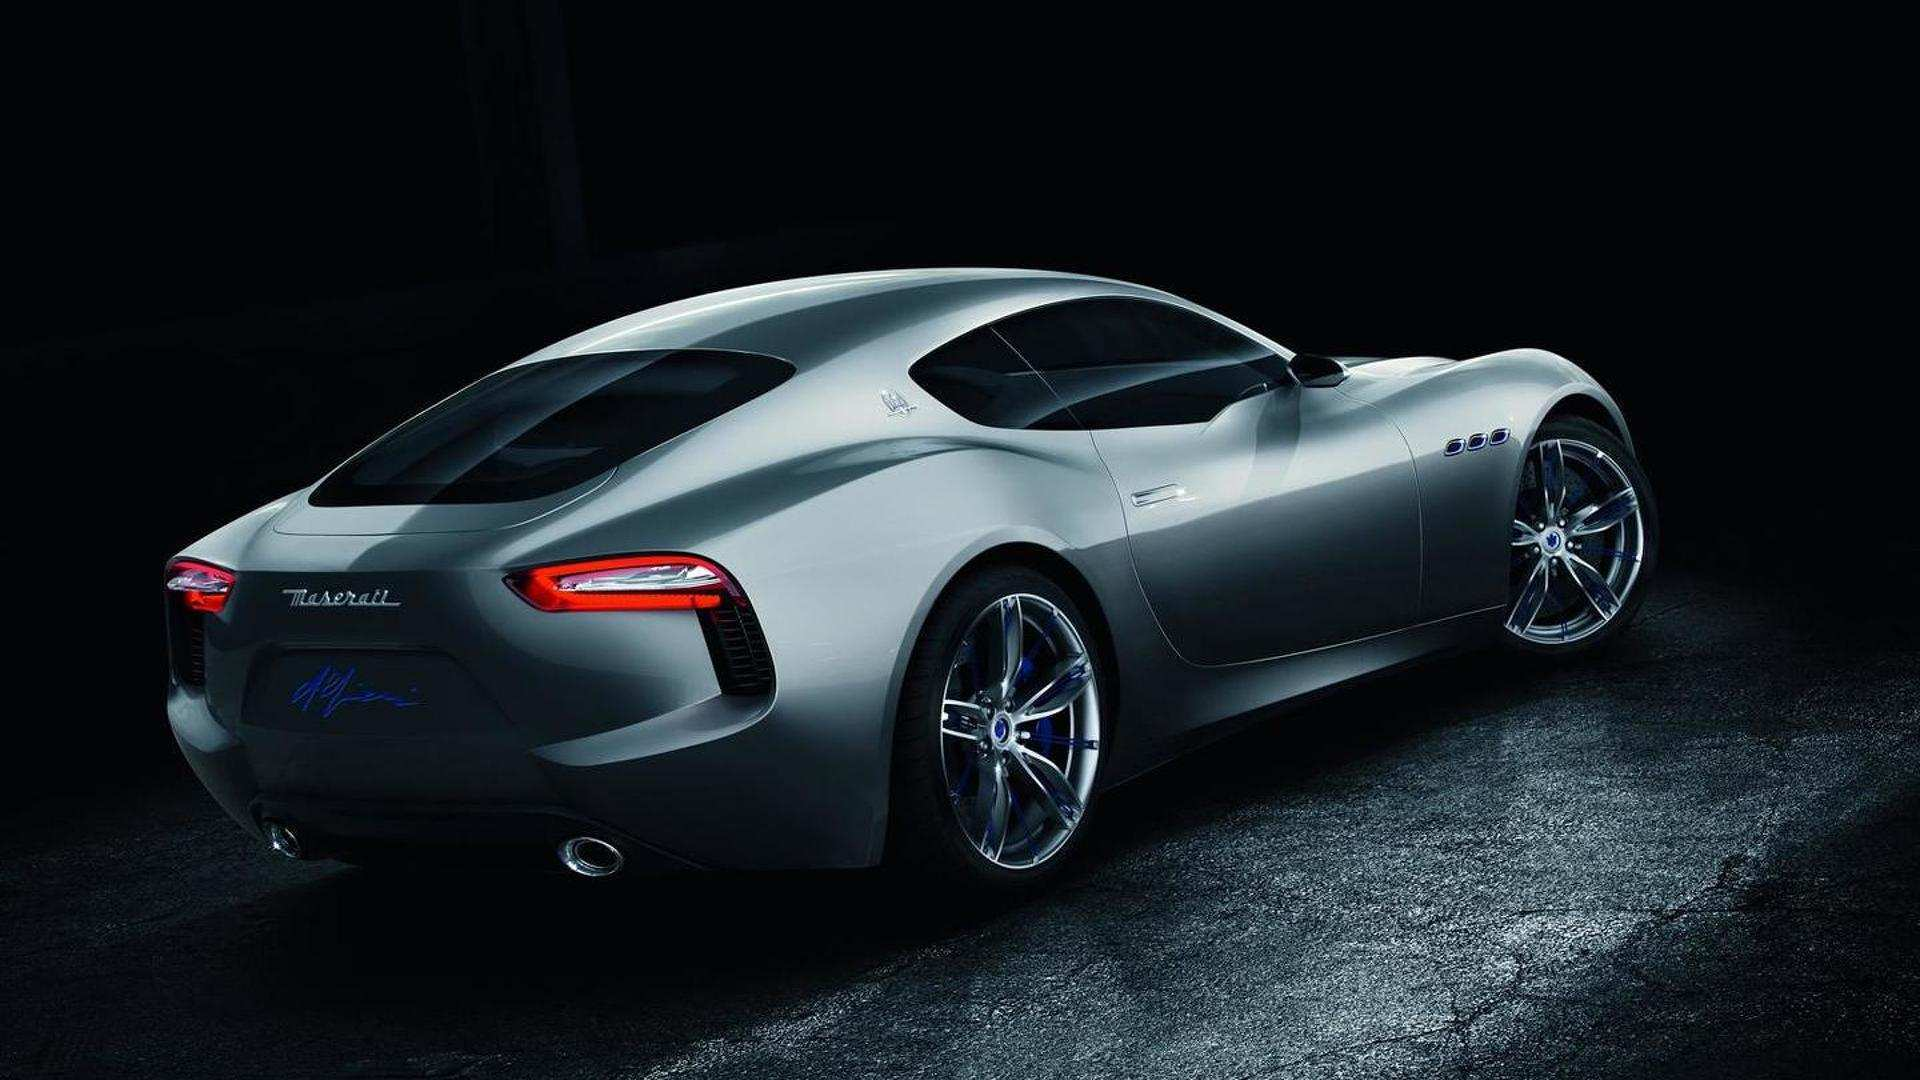 44 Concept of 2020 Maserati Alfieri Pricing by 2020 Maserati Alfieri